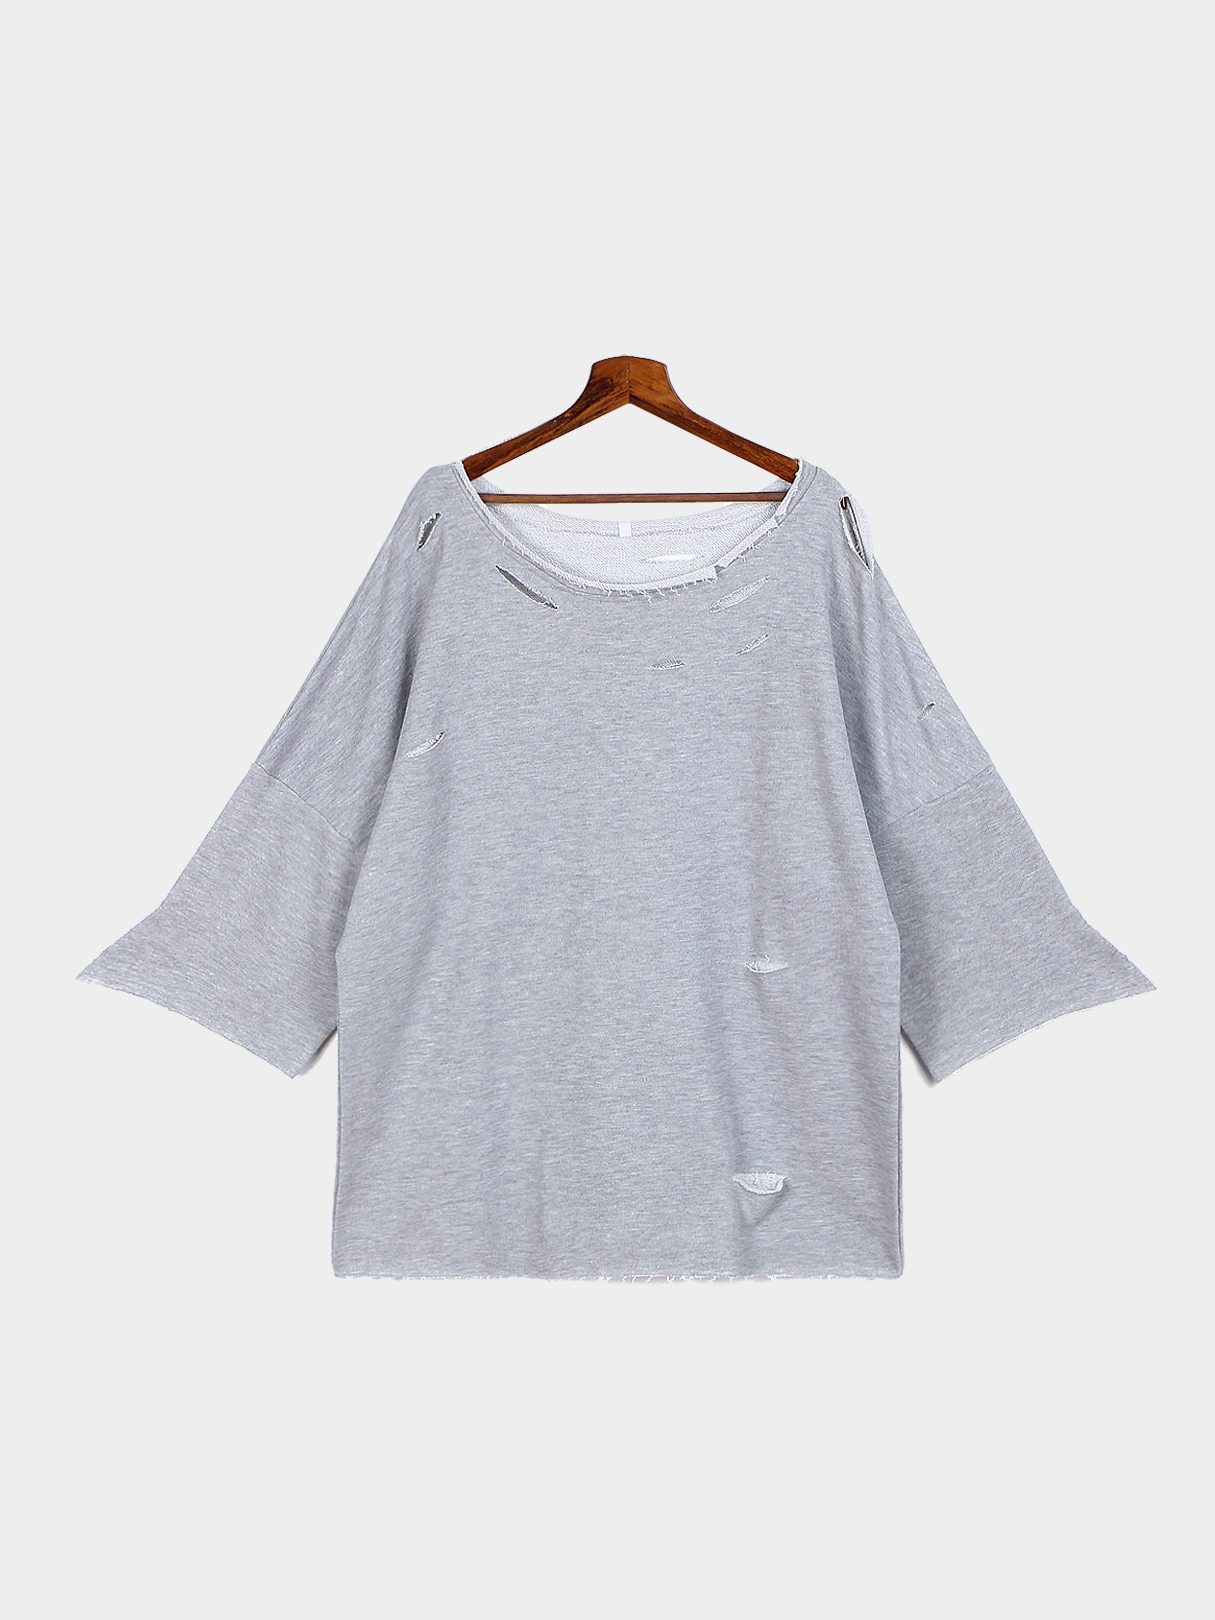 Grey Loose Wide Sleeves Hollow Out Sweatshirt